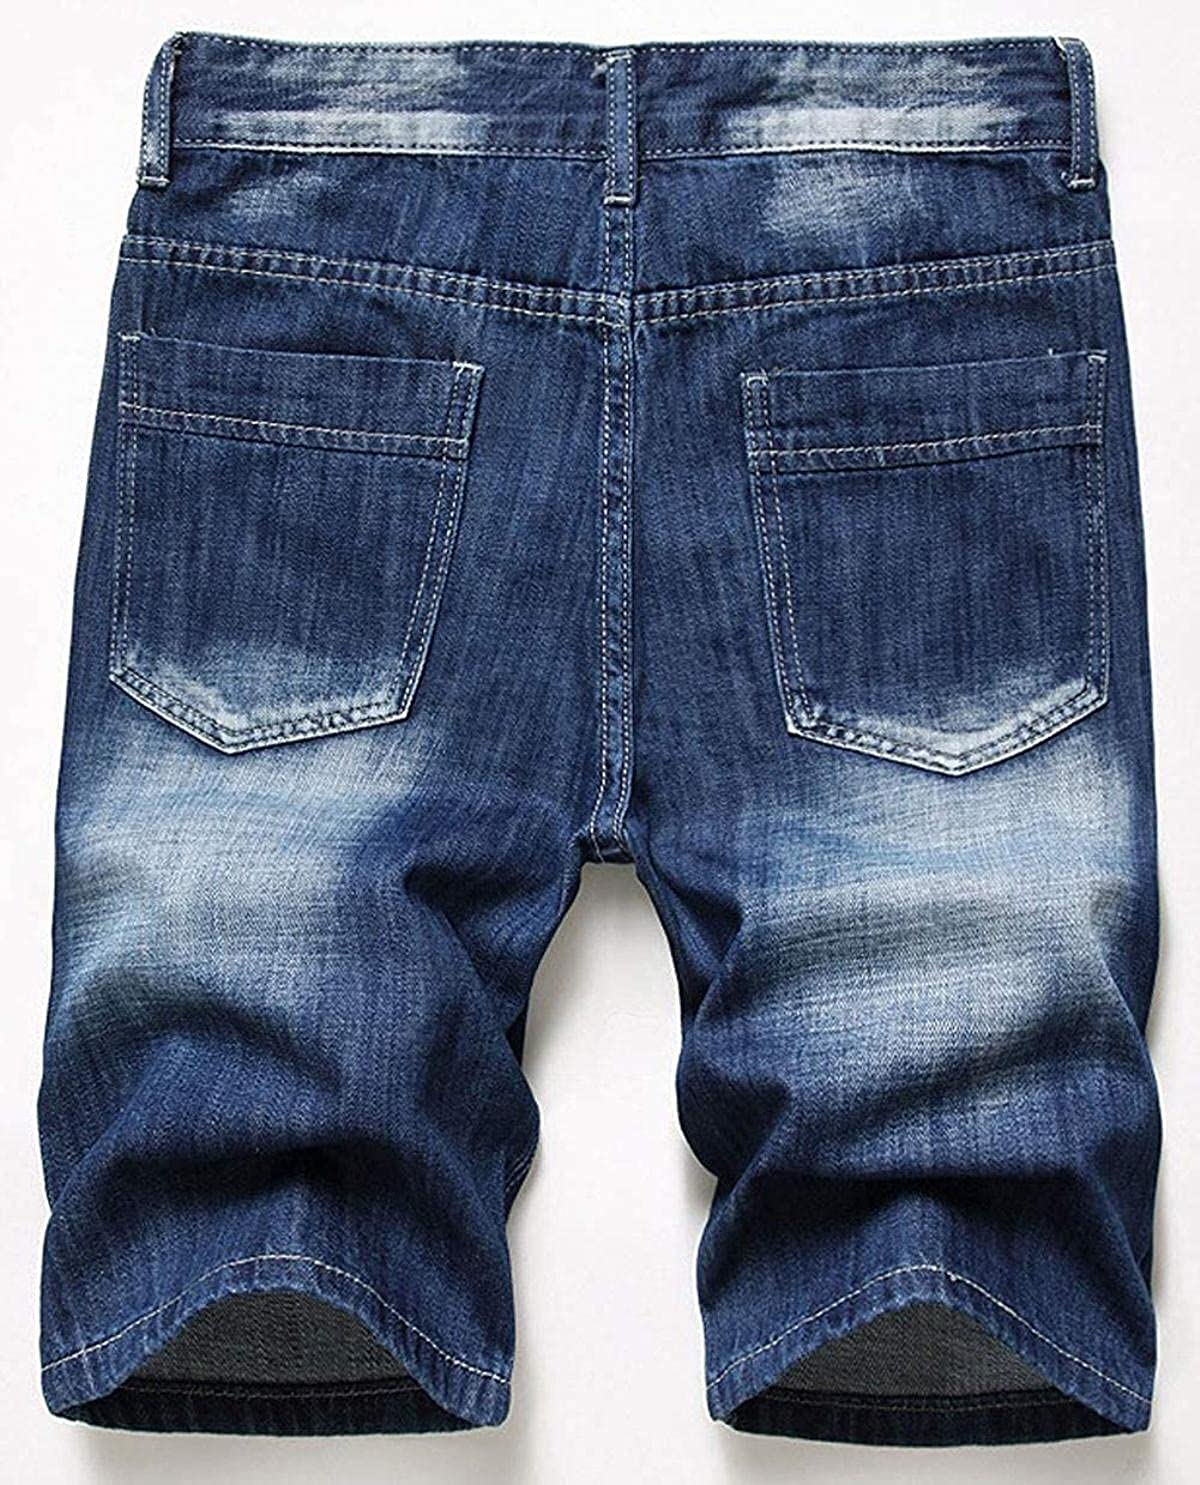 HFStorry Men's Summer Casual Distressed Ripped Denim Shorts Capris Pants Jeans